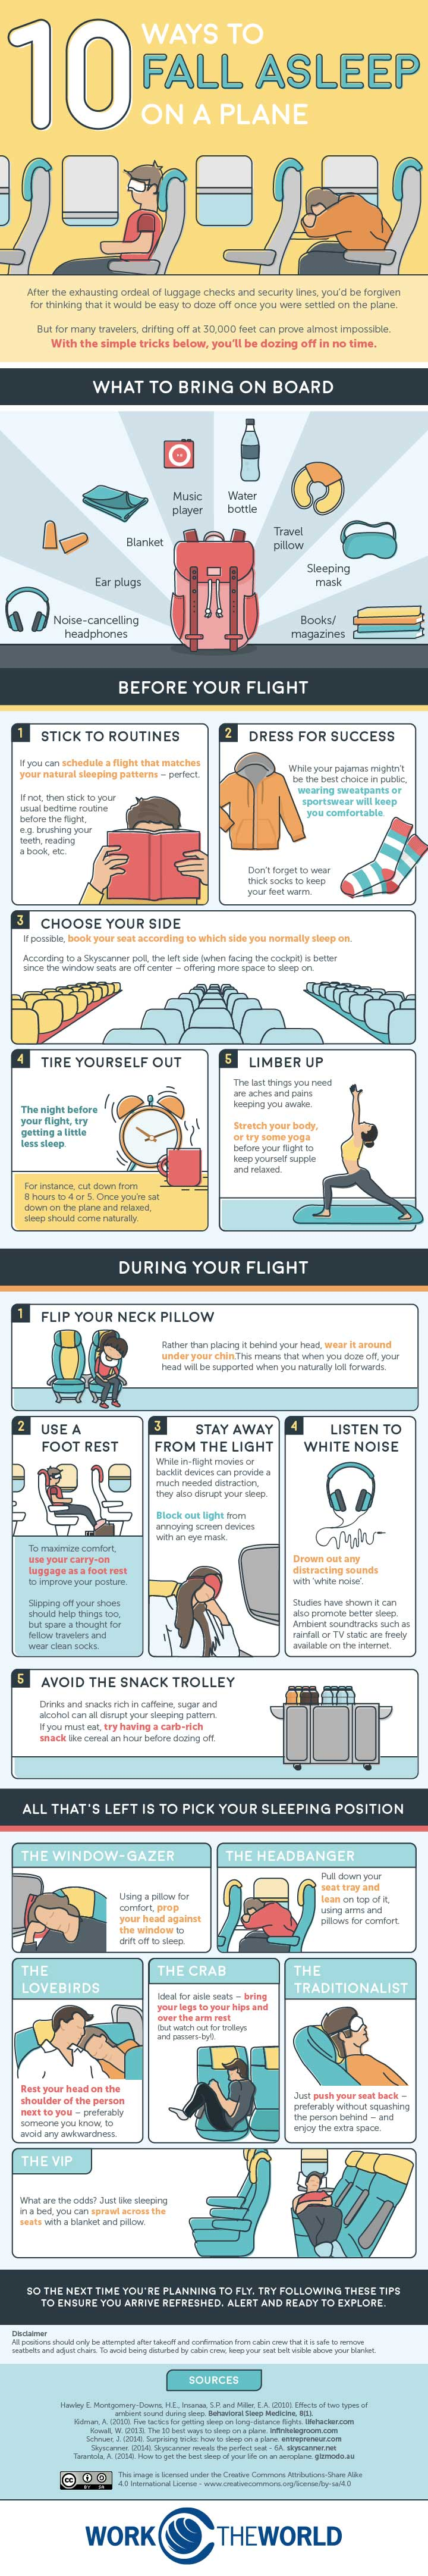 Infographic about how to sleep on a plane